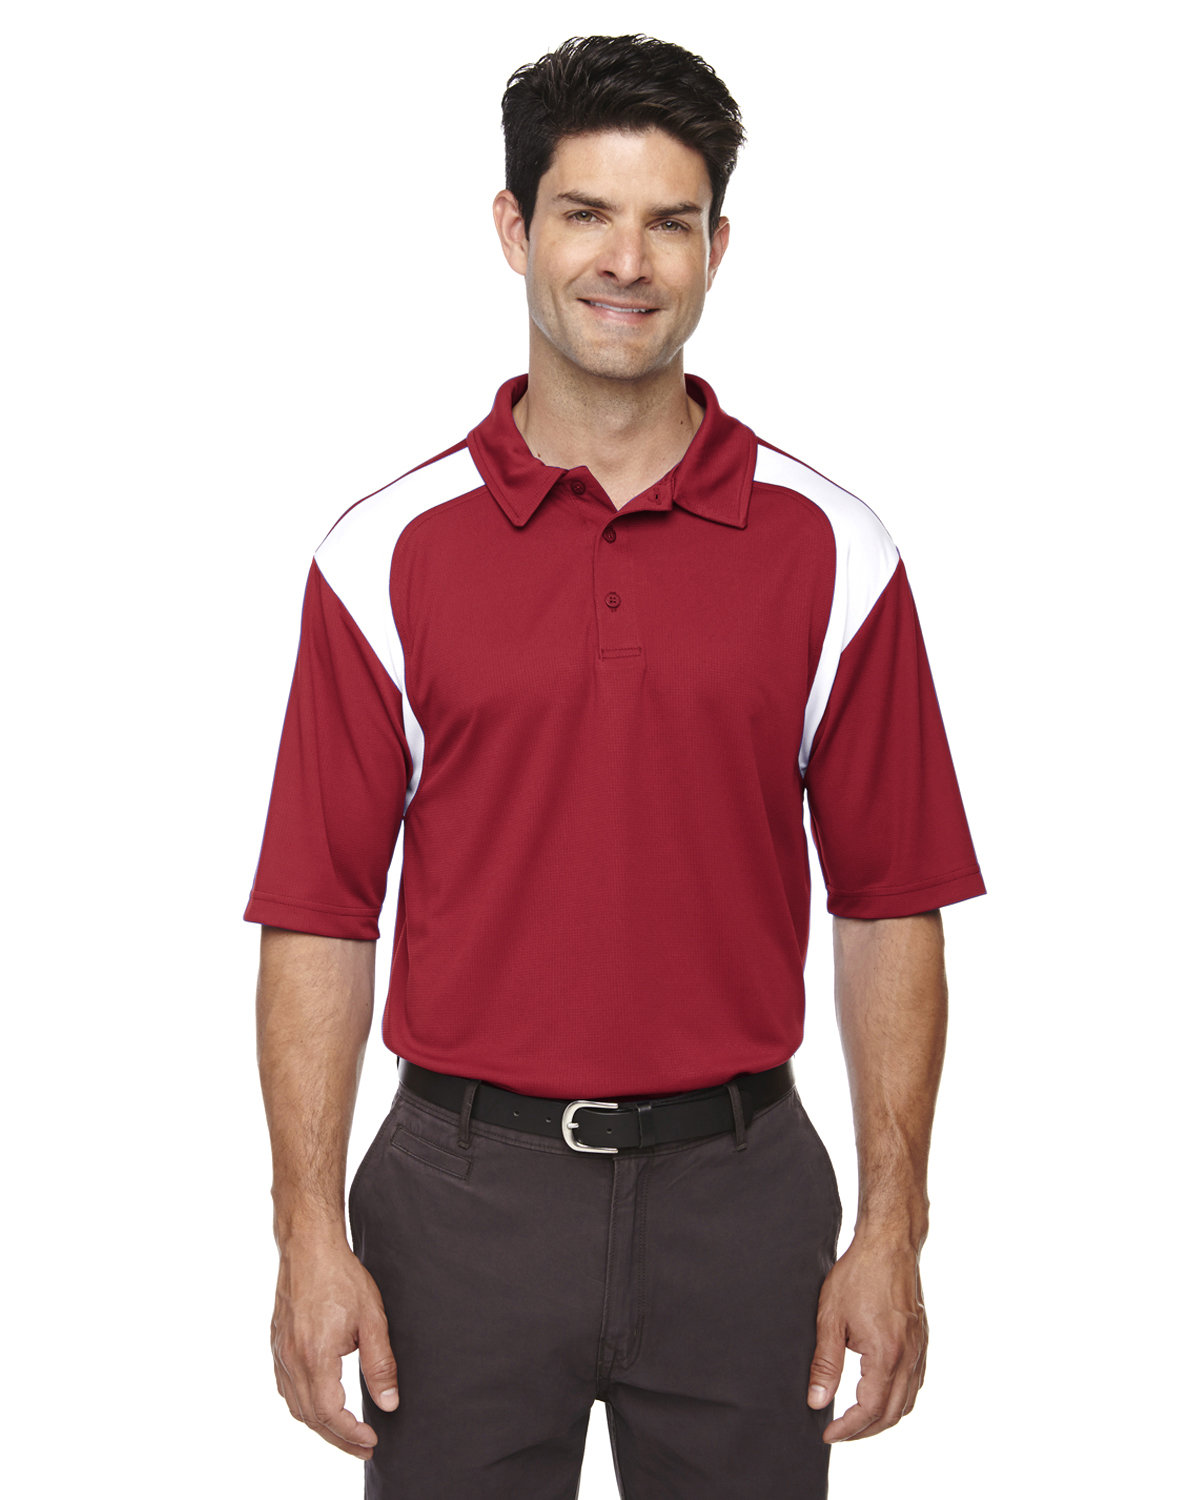 Extreme Men's Eperformance™ Colorblock Textured Polo CLASSIC RED